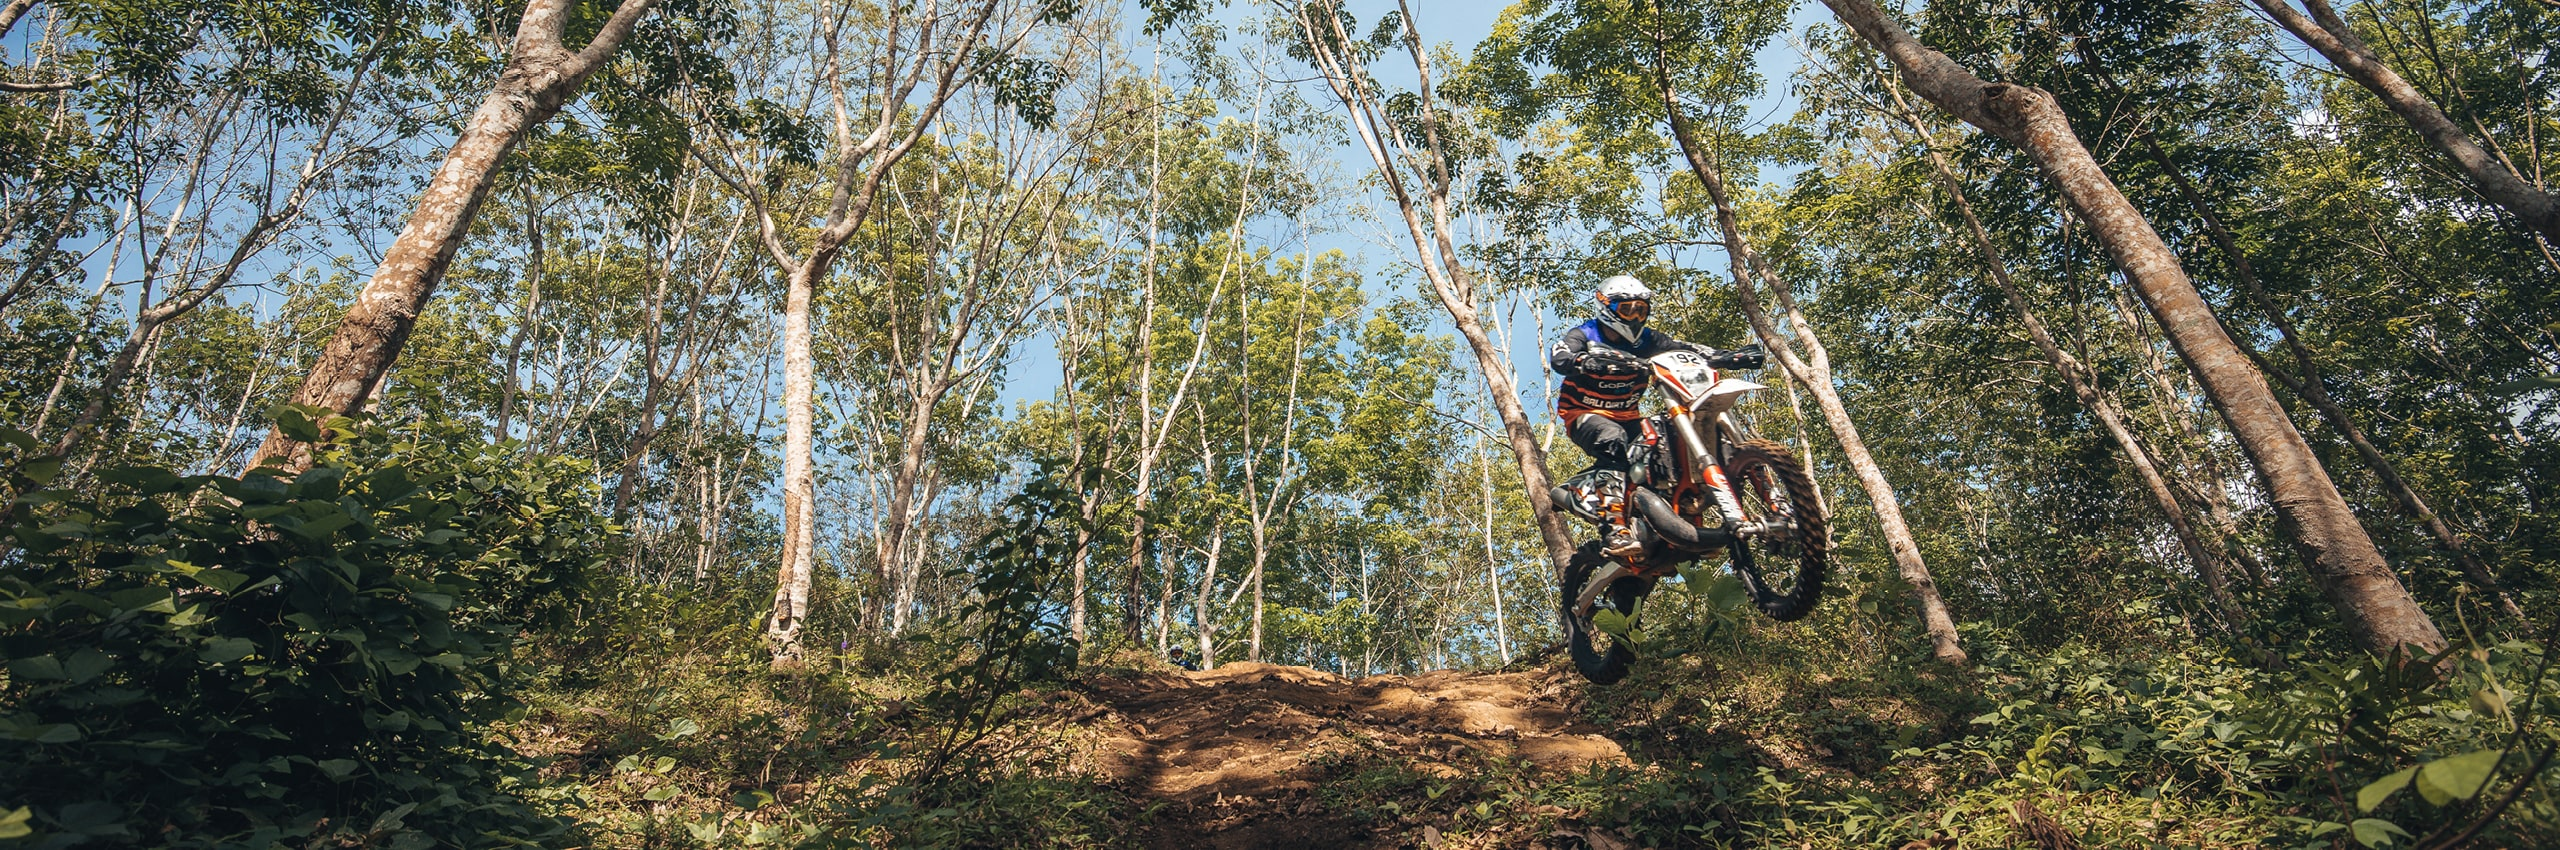 Bali_Dirt_Bikes_Rubber_Forest_Slider4